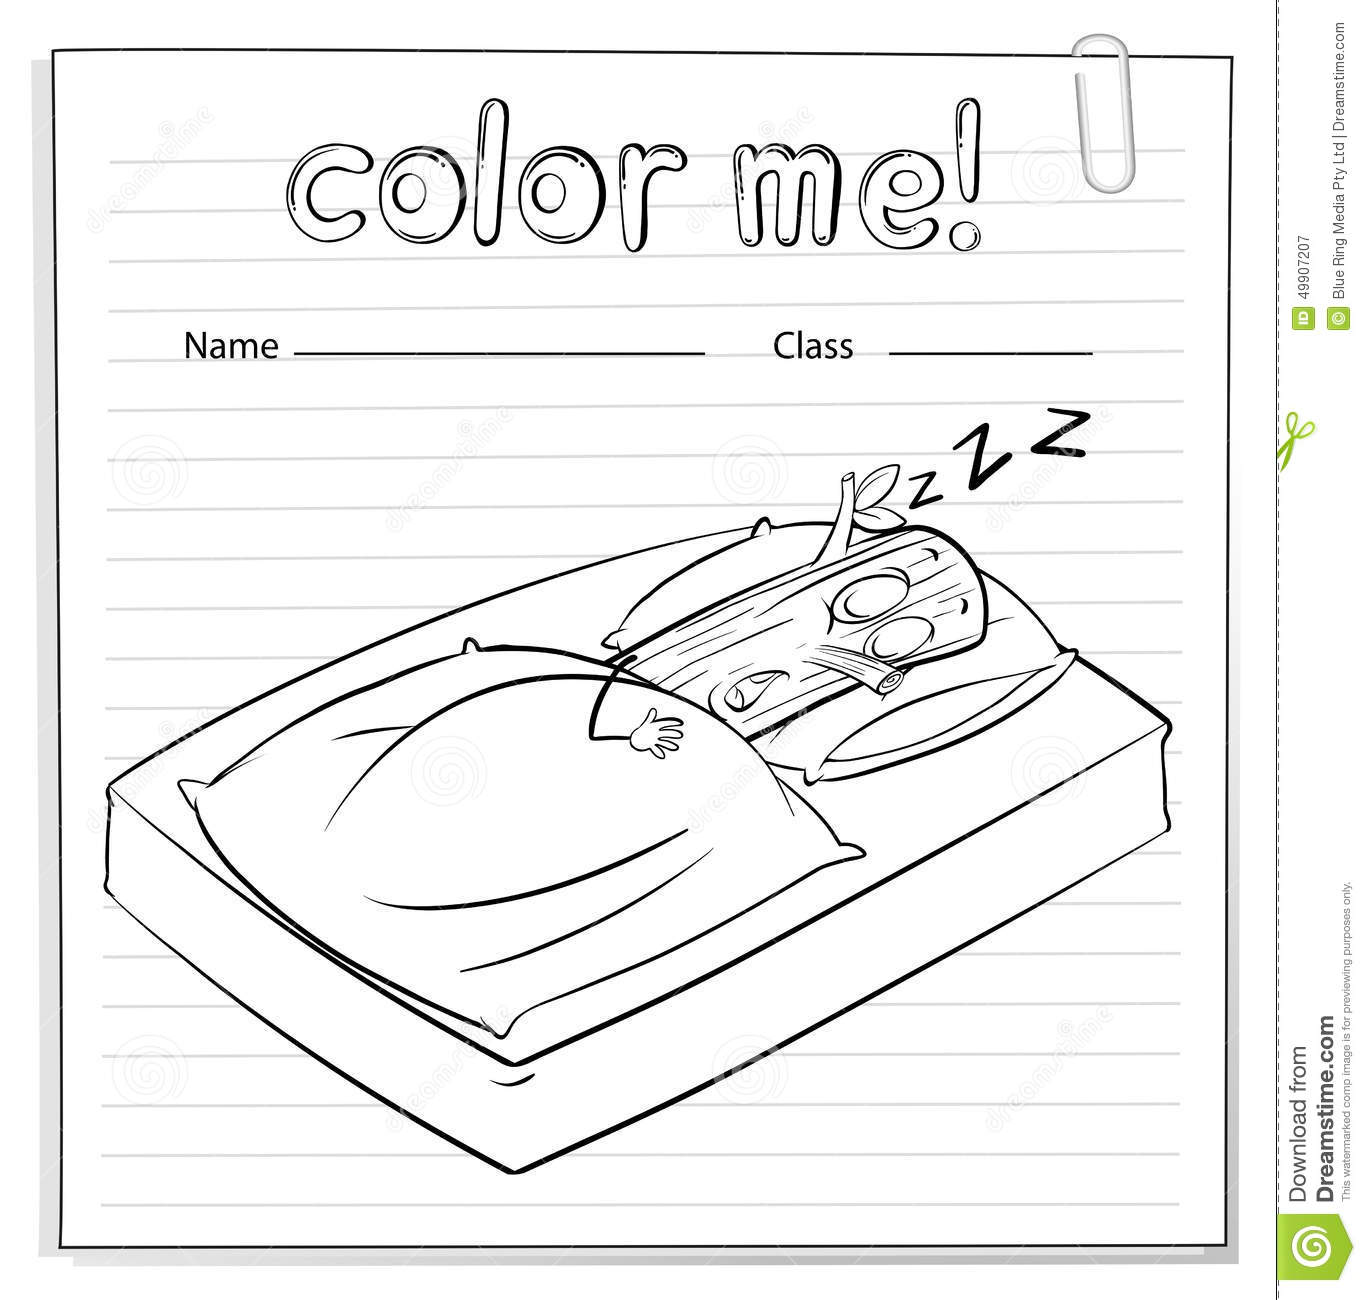 A Color Me Worksheet With A Log Sleeping Vector Image – Log Worksheet